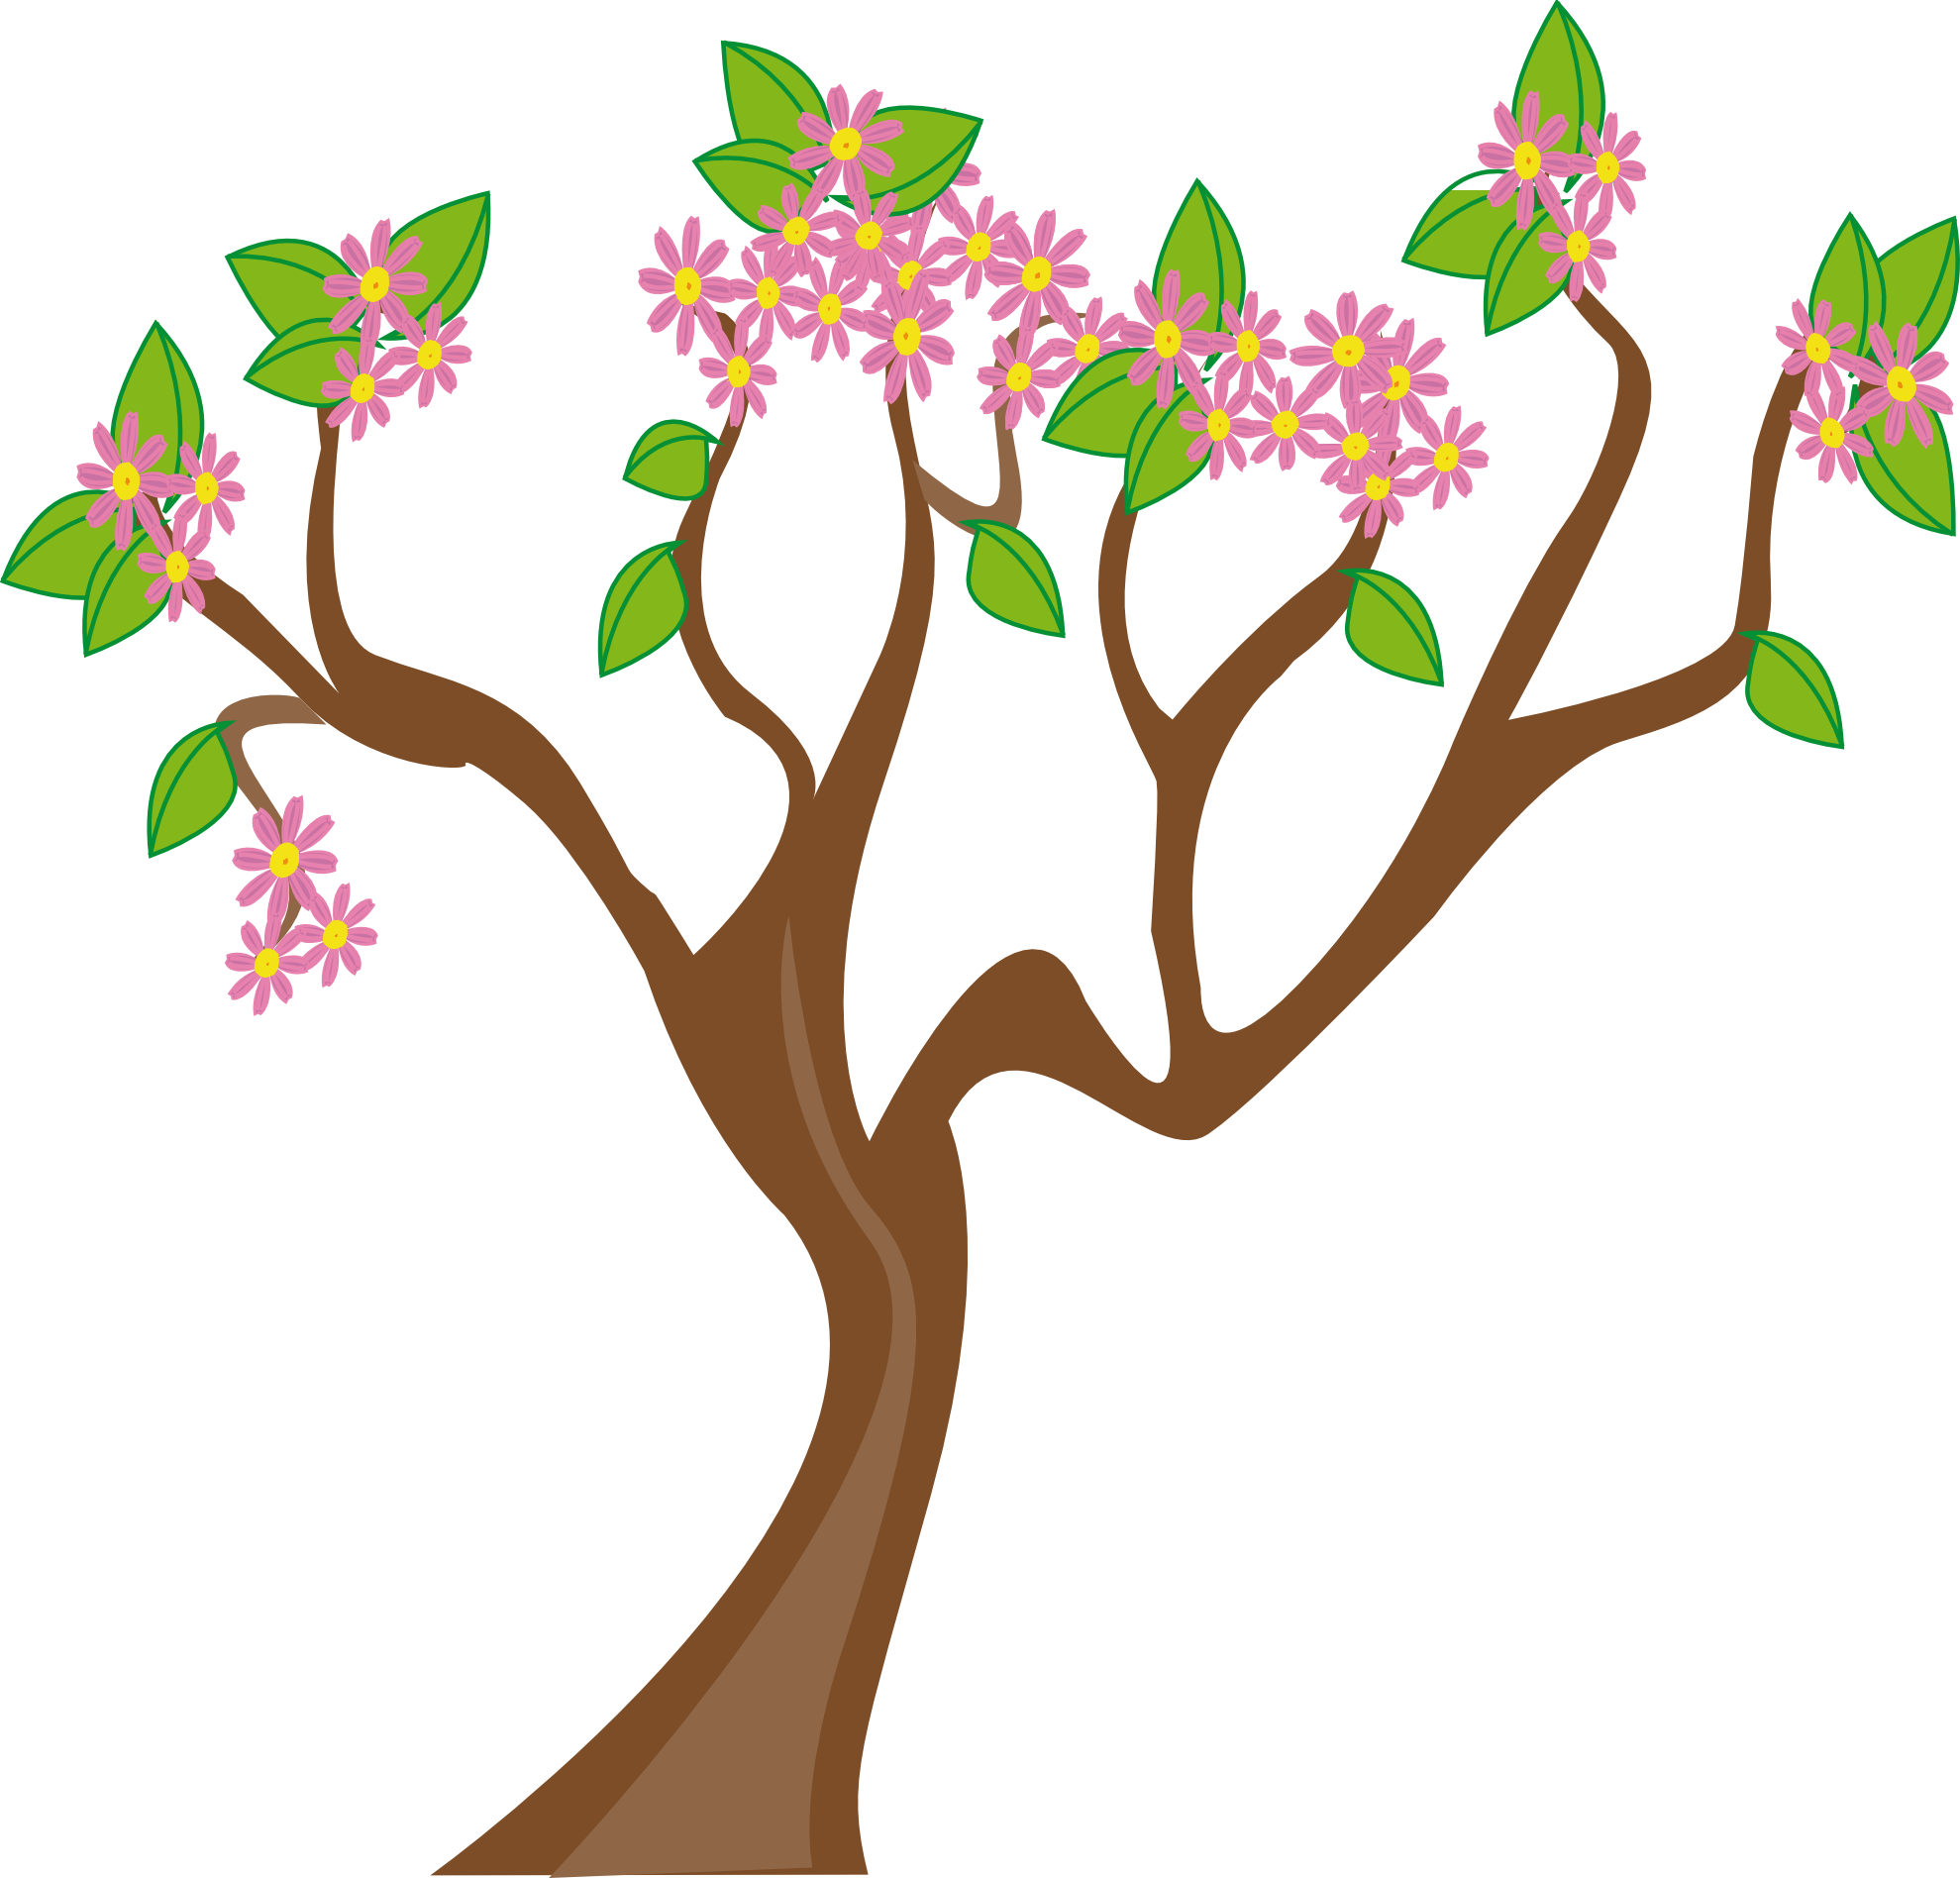 1979x1896 April Showers Bring May Flowers Clip Art Free 7